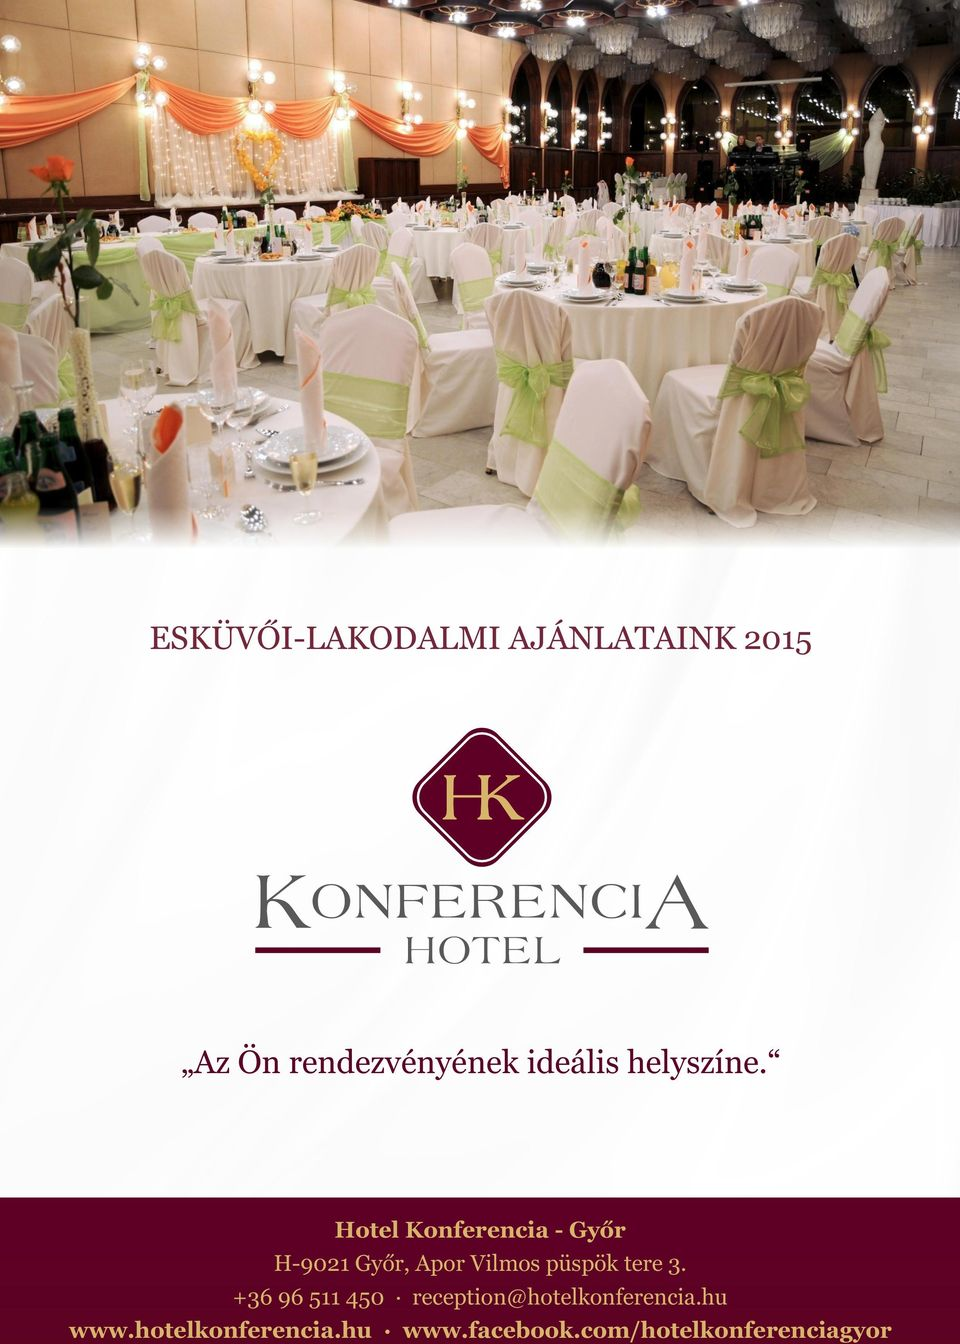 ONFERENCIA K HOTEL